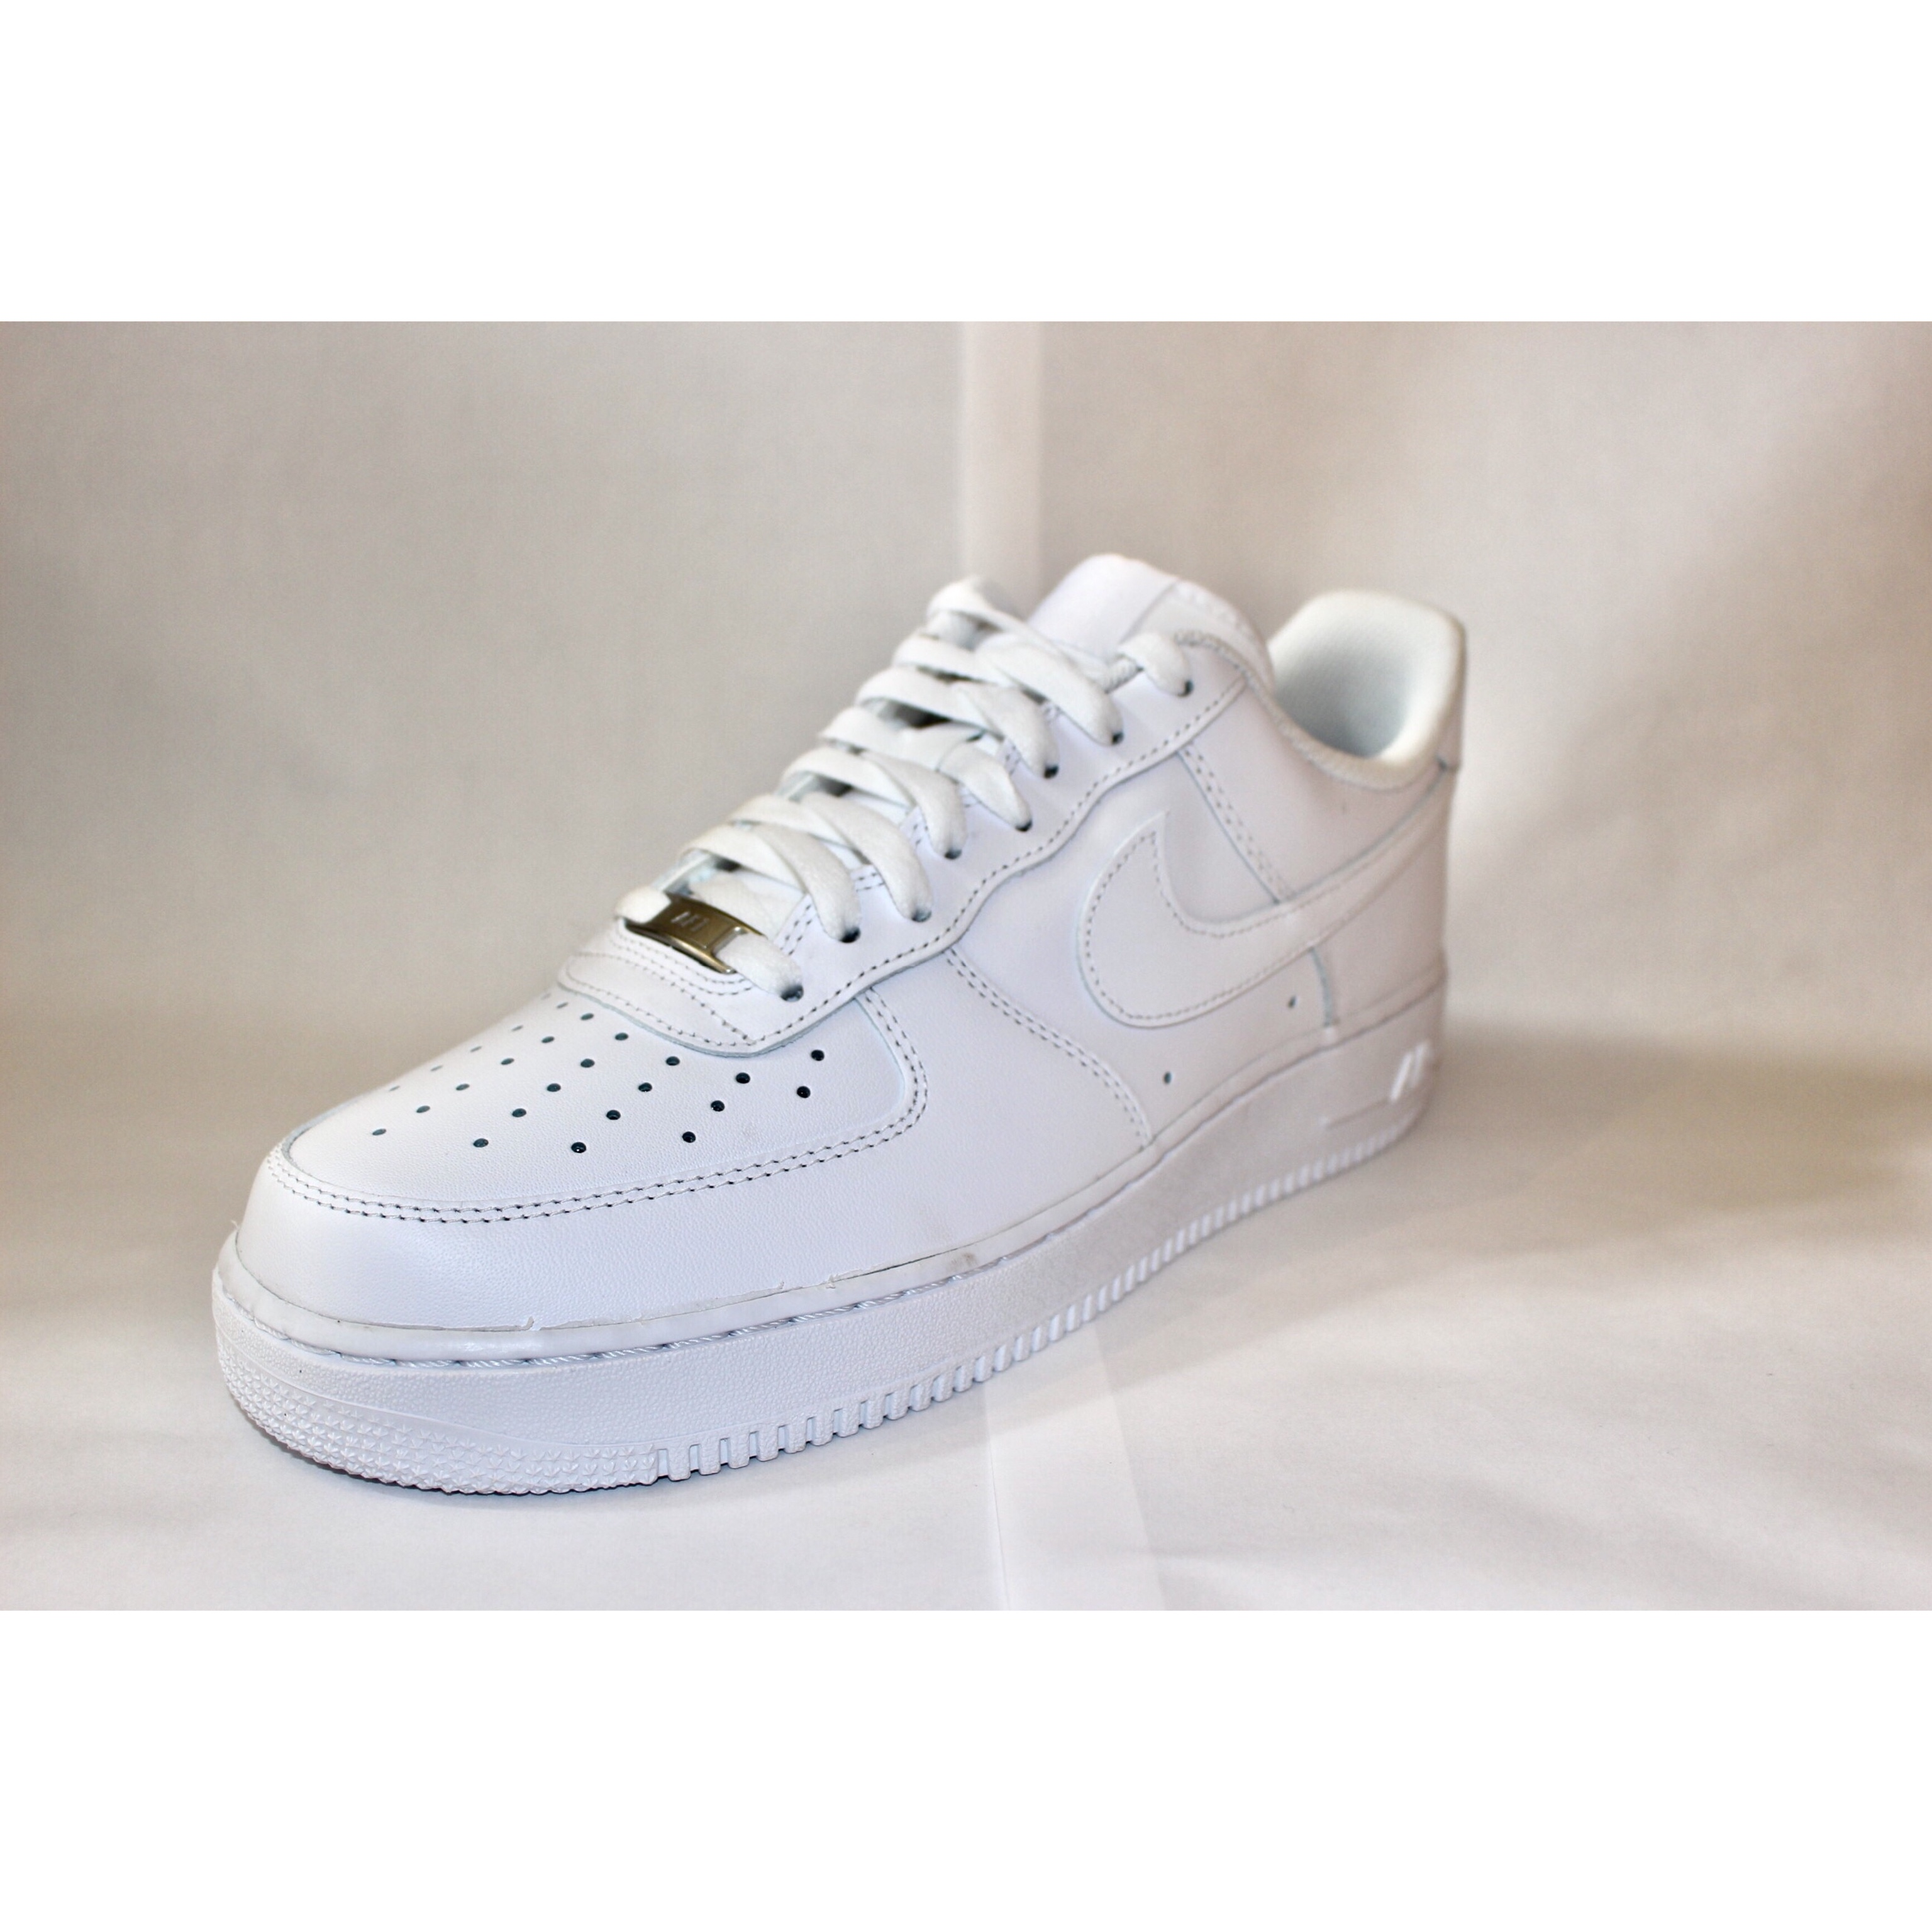 quality products best value best place NIKE AIR FORCE ONE CUSTOM SERVICE I Will Customise... - Depop